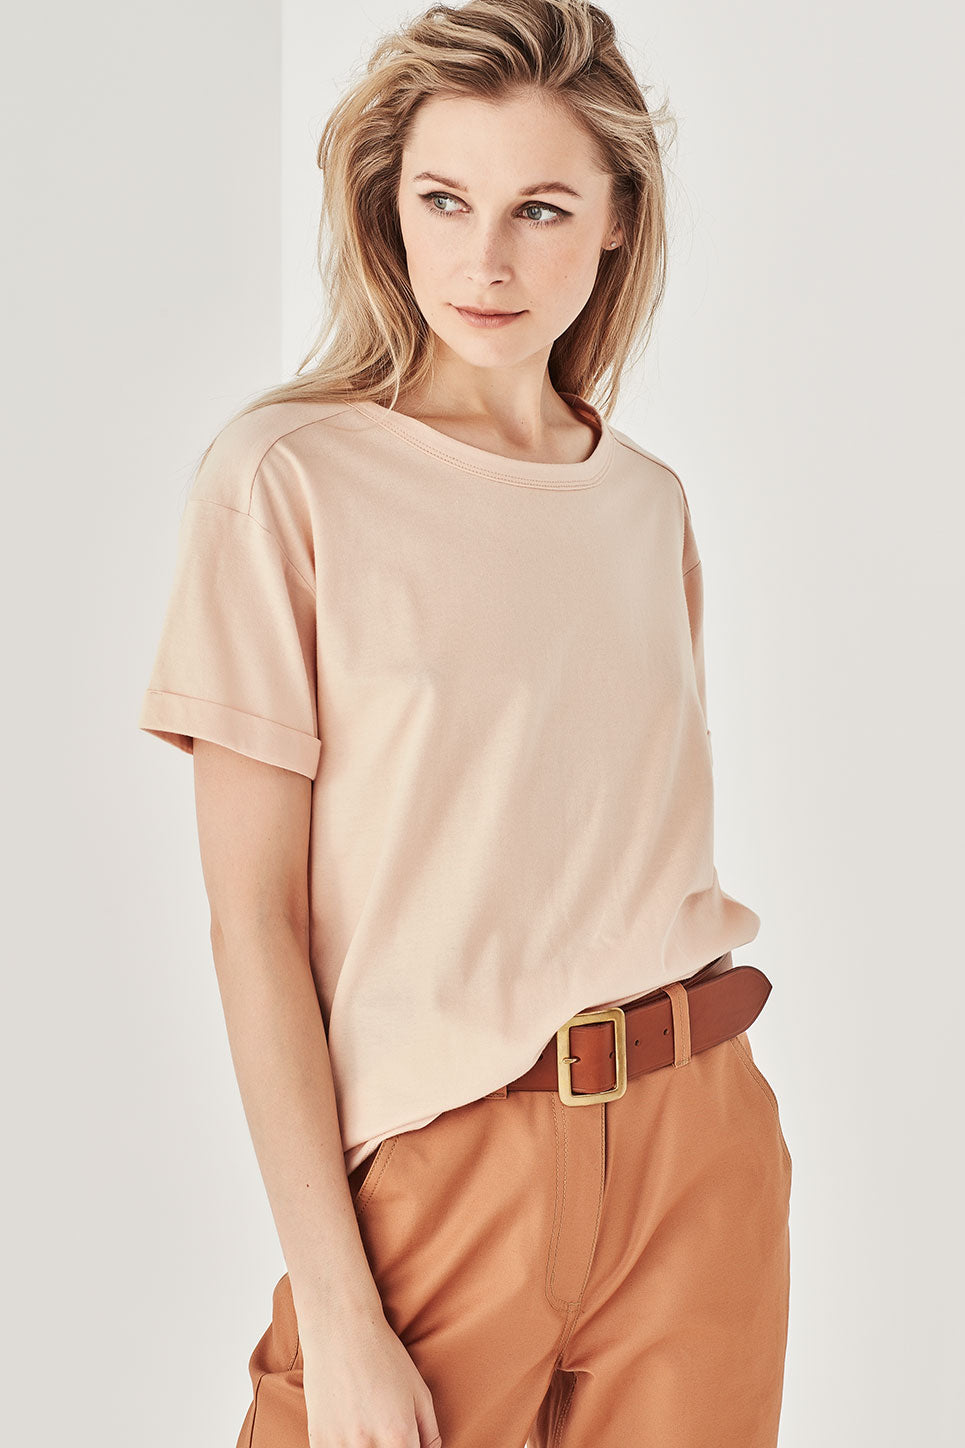 The Bastion Tee in Apricot